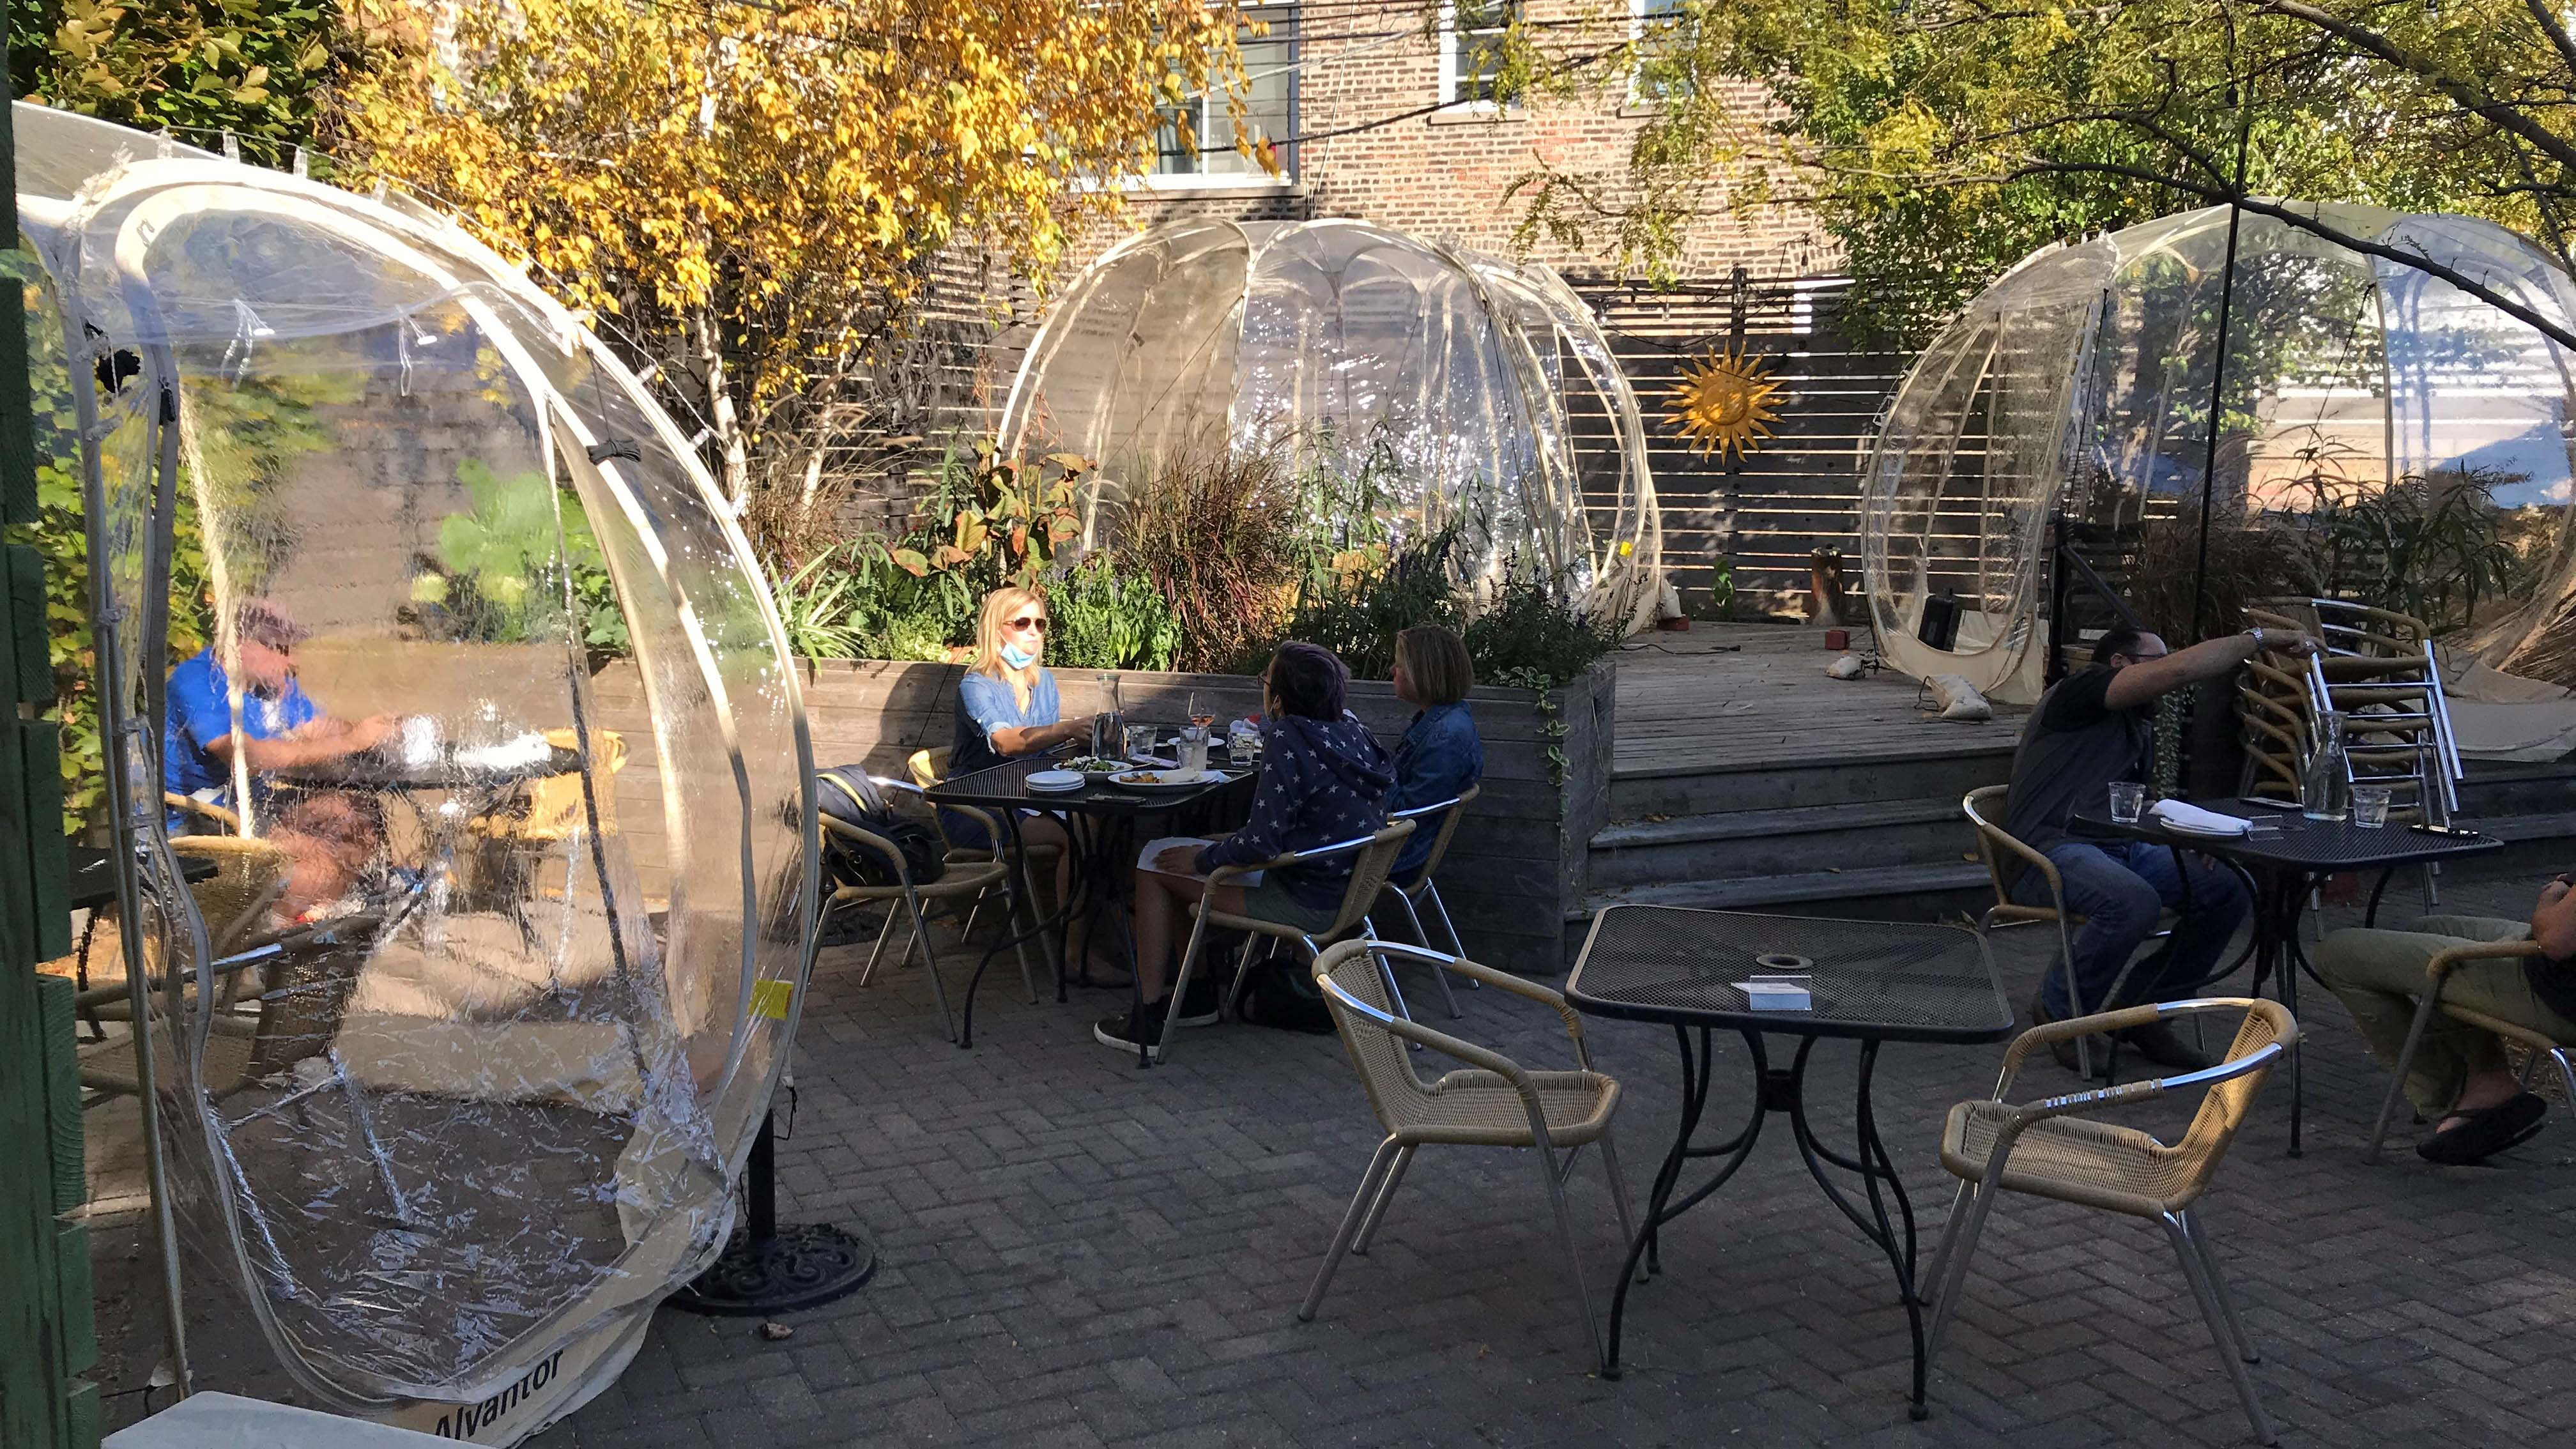 Chicago Restaurants Scramble To Winterize Outdoor Dining Amid Covid 19 Restrictions Abc7 Chicago